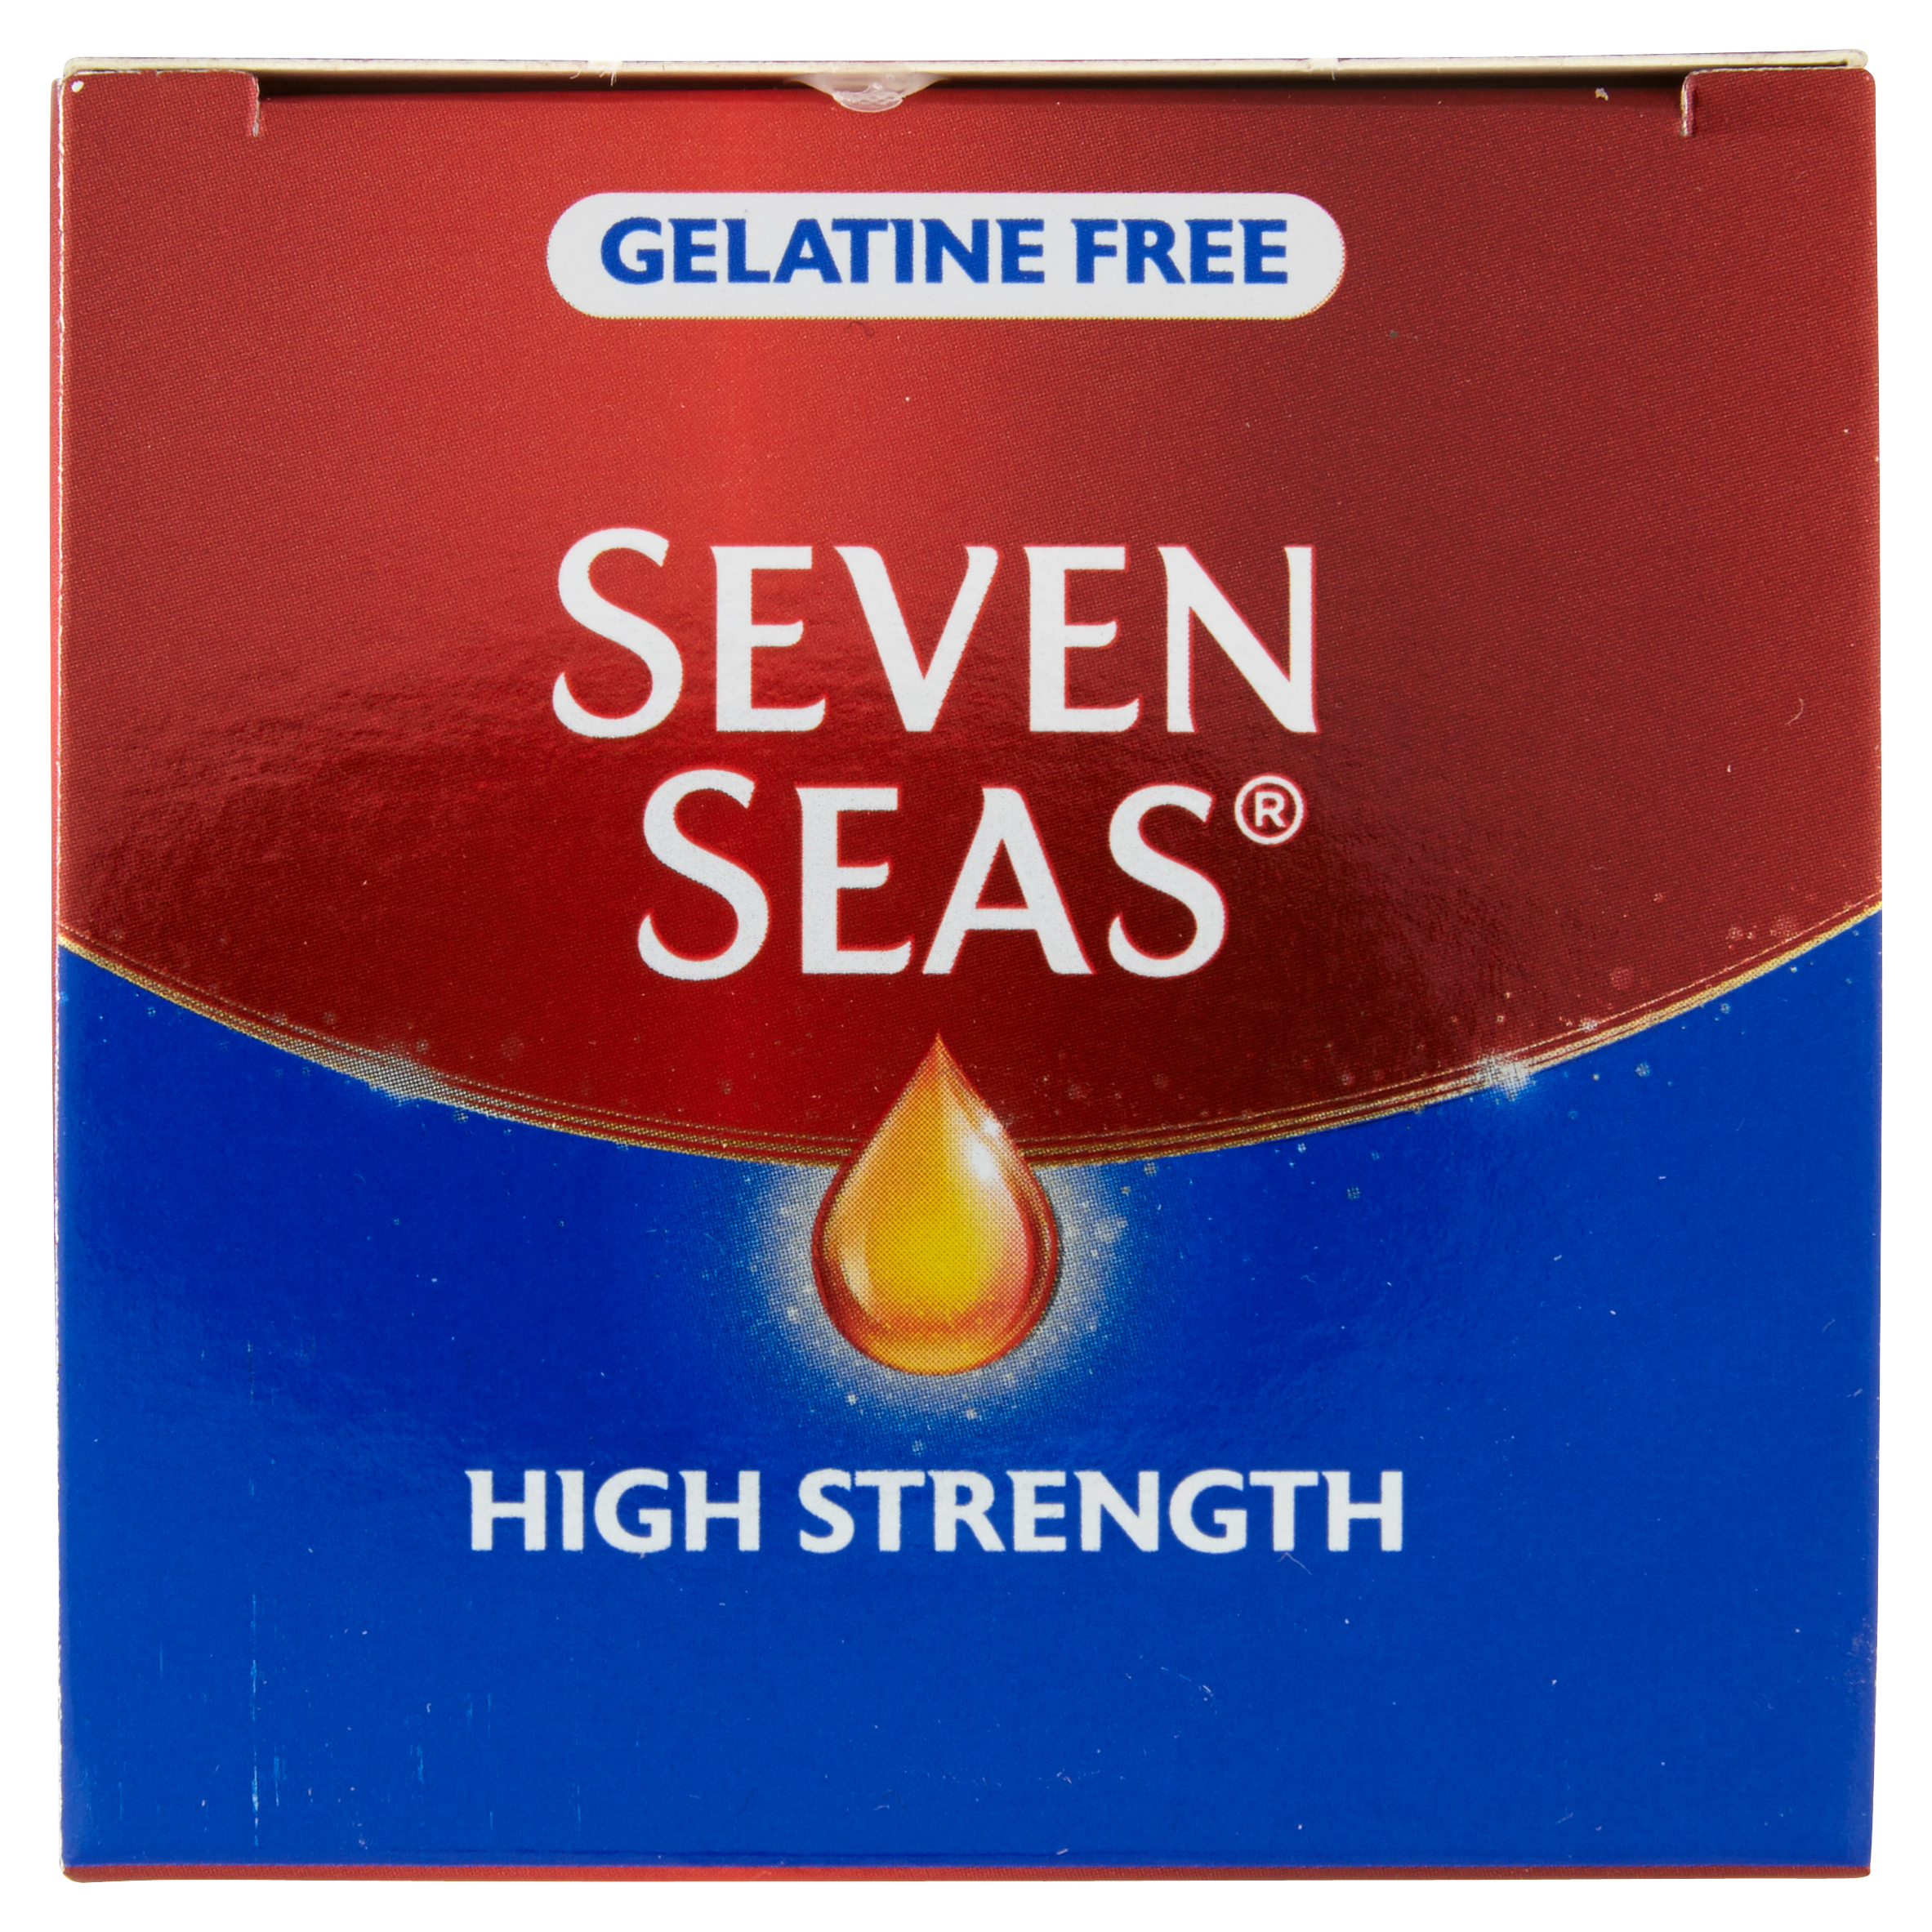 Seven Seas High Strength Gelatine Free Capsules